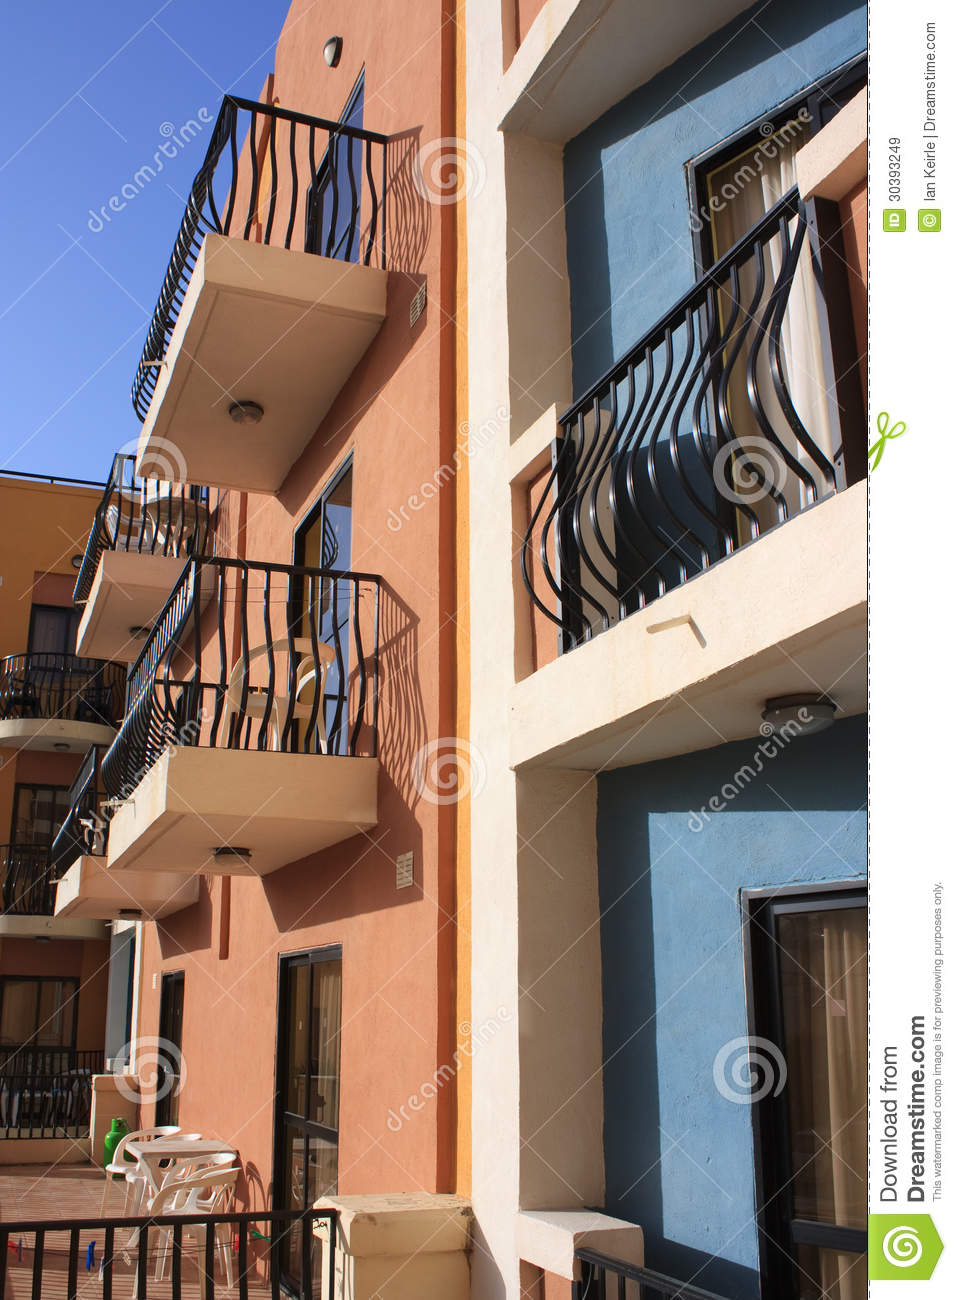 Hotel balconies royalty free stock images image 30393249 for Hotels with balconies